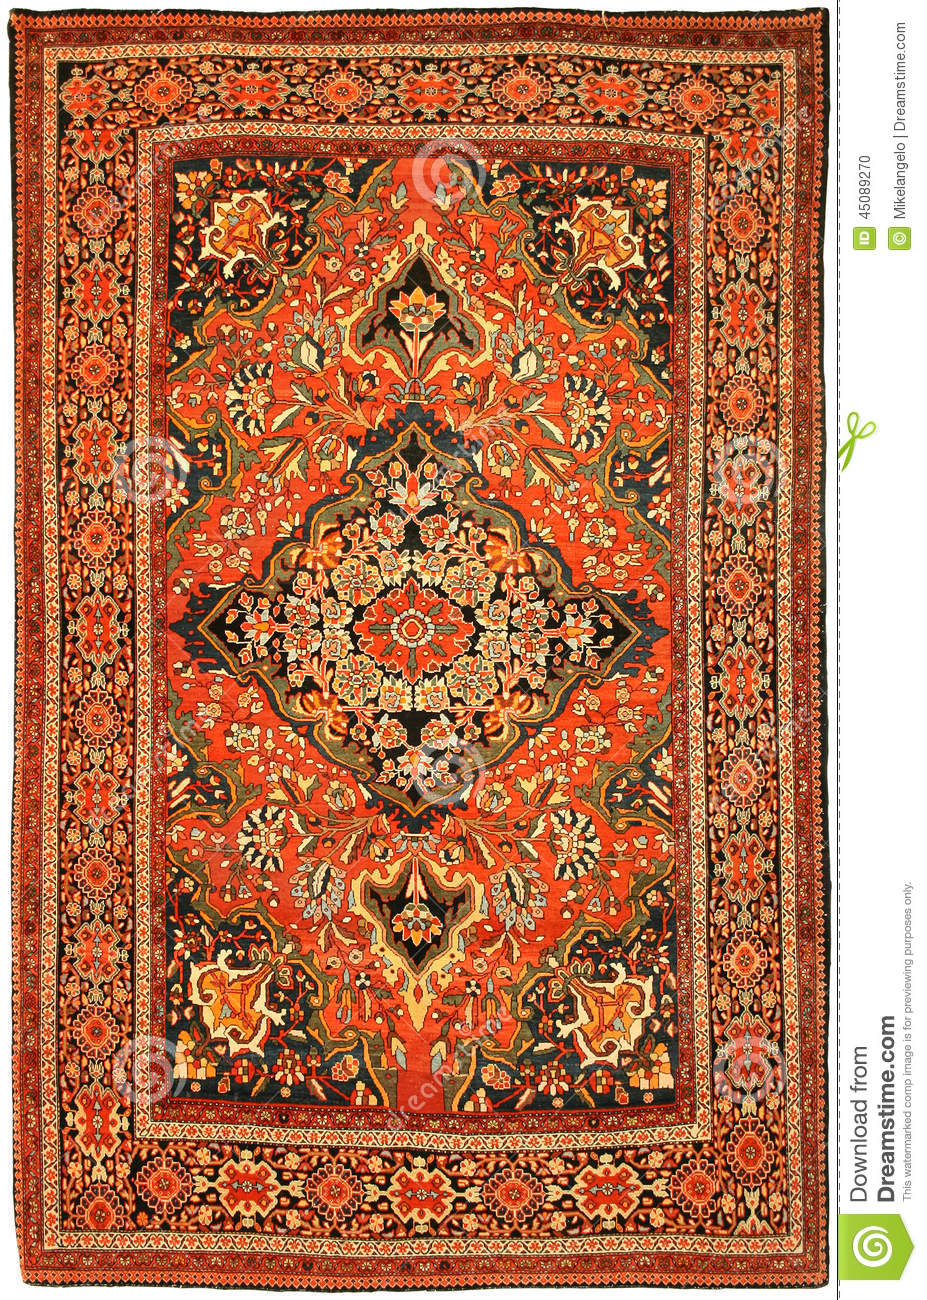 tapis iranien persan rouge antique photo stock image 45089270. Black Bedroom Furniture Sets. Home Design Ideas